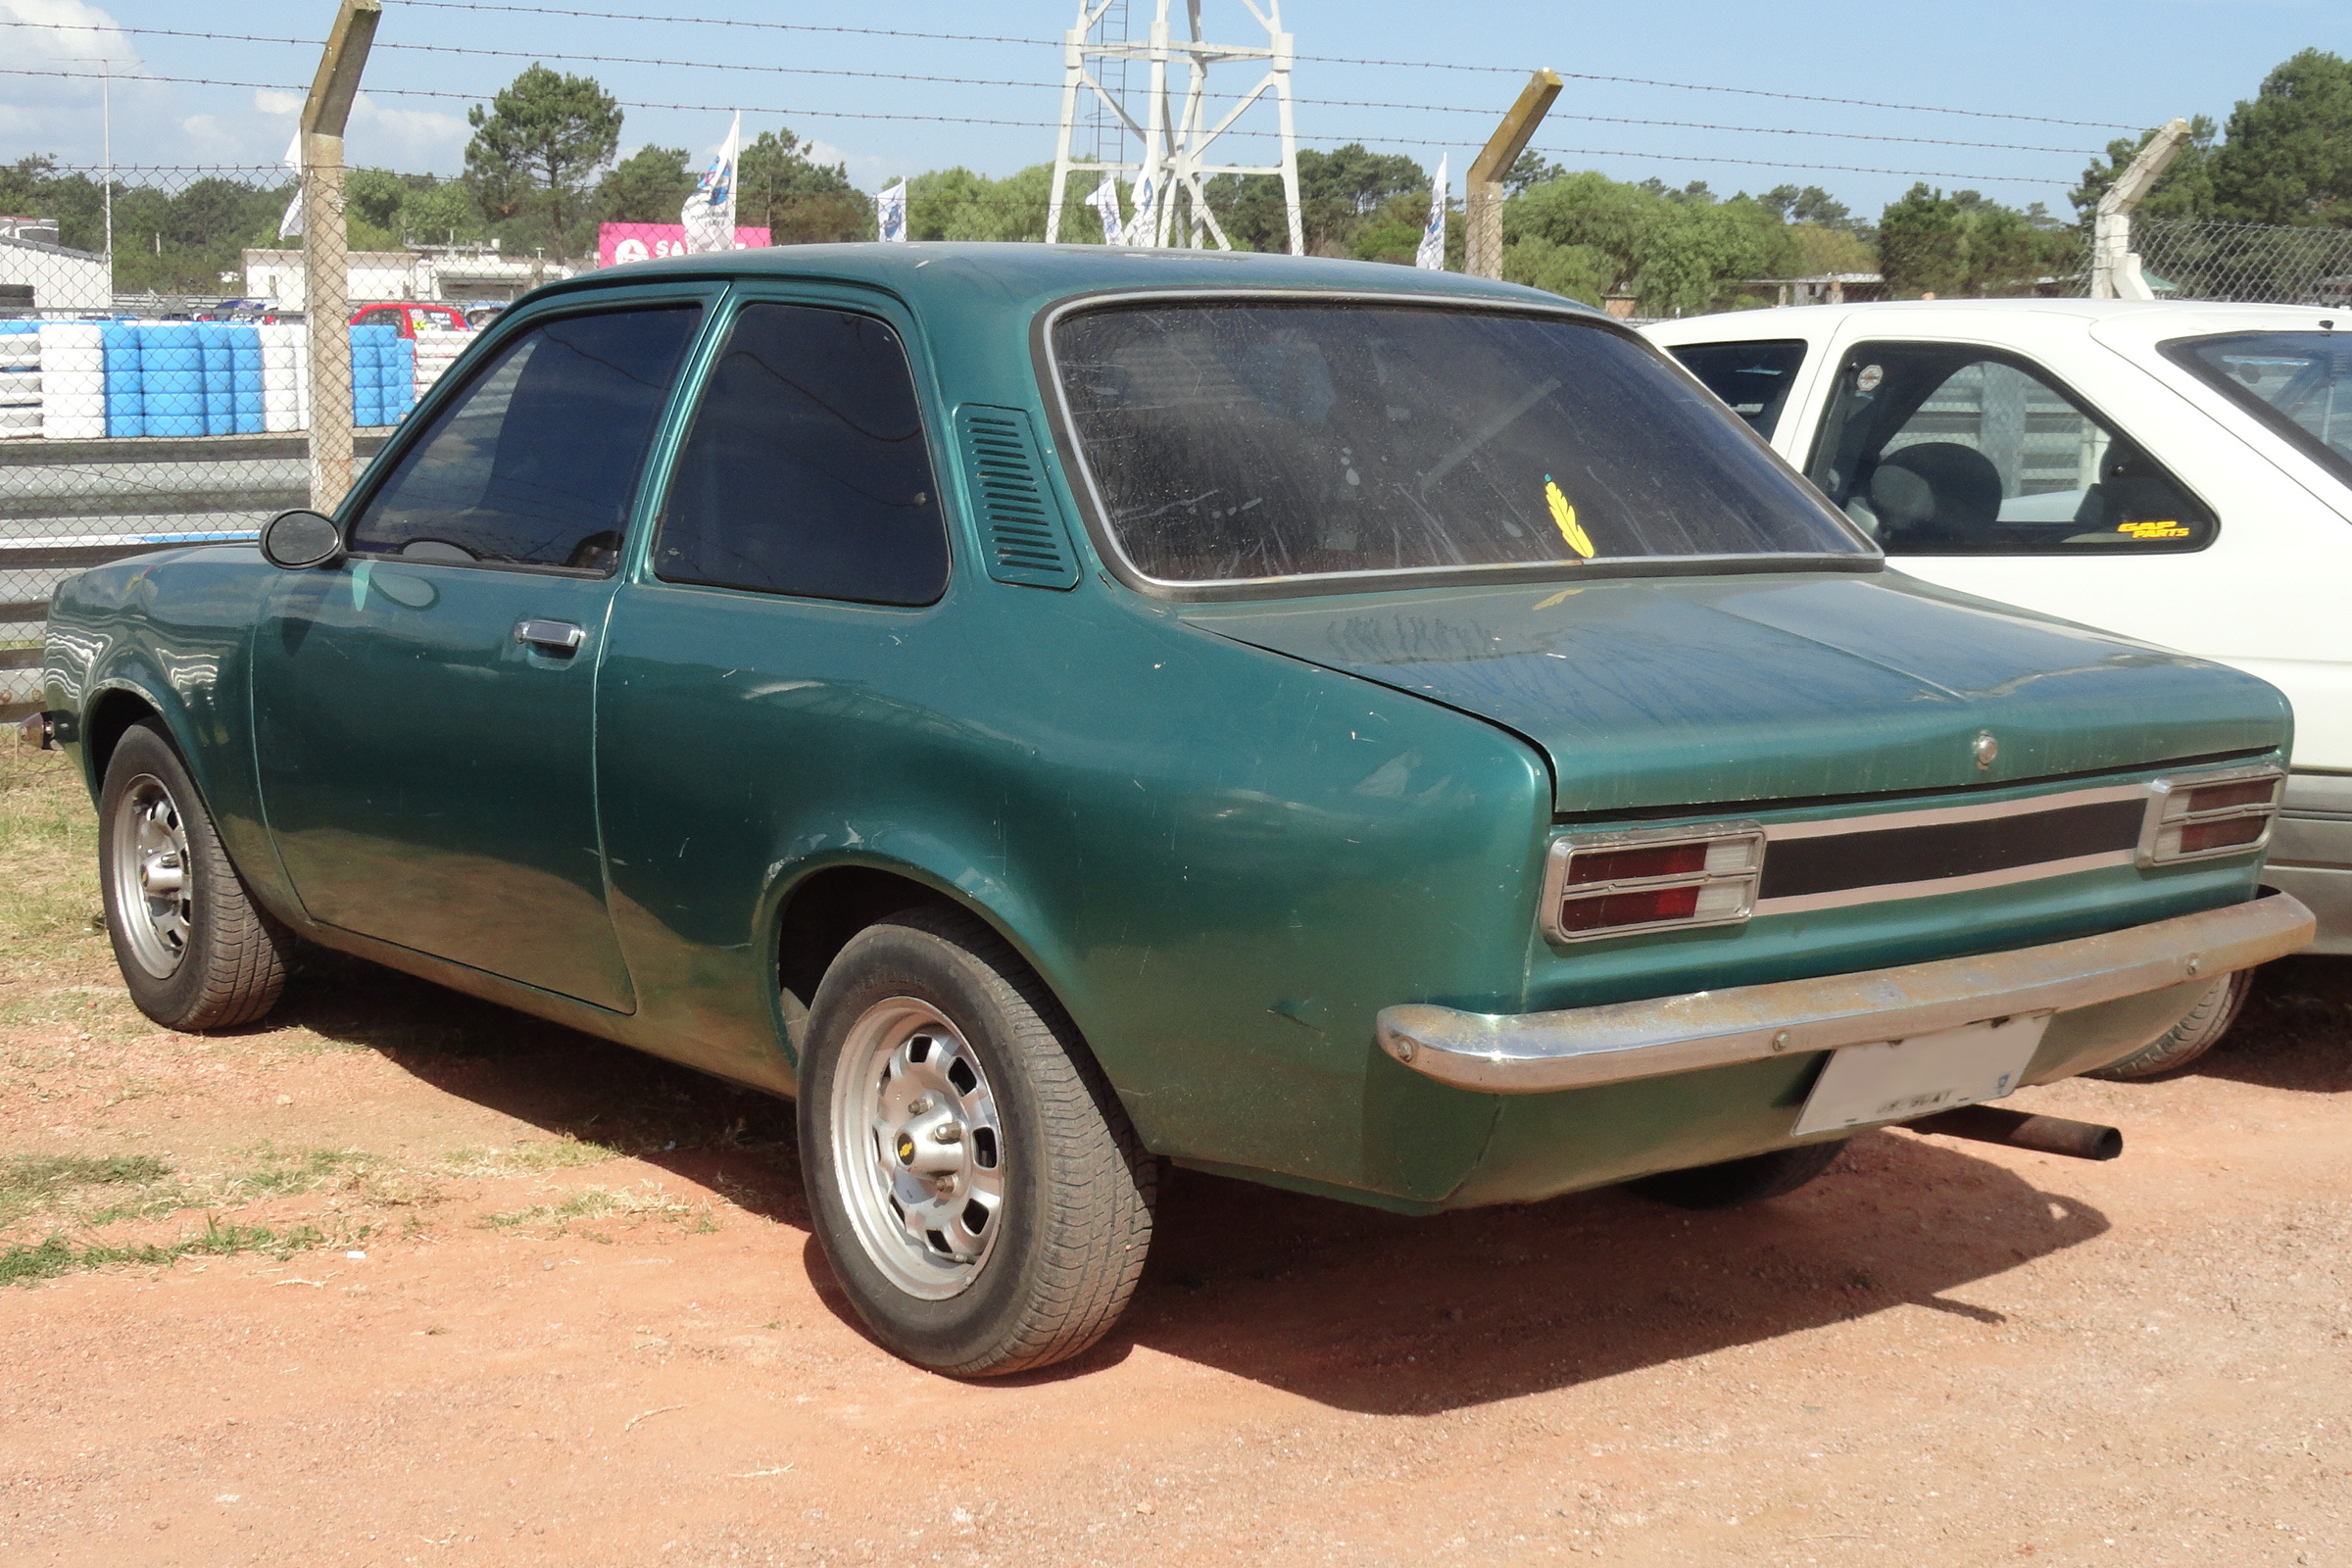 File Chevrolet Chevette 1970s Green In Uruguay Jpg